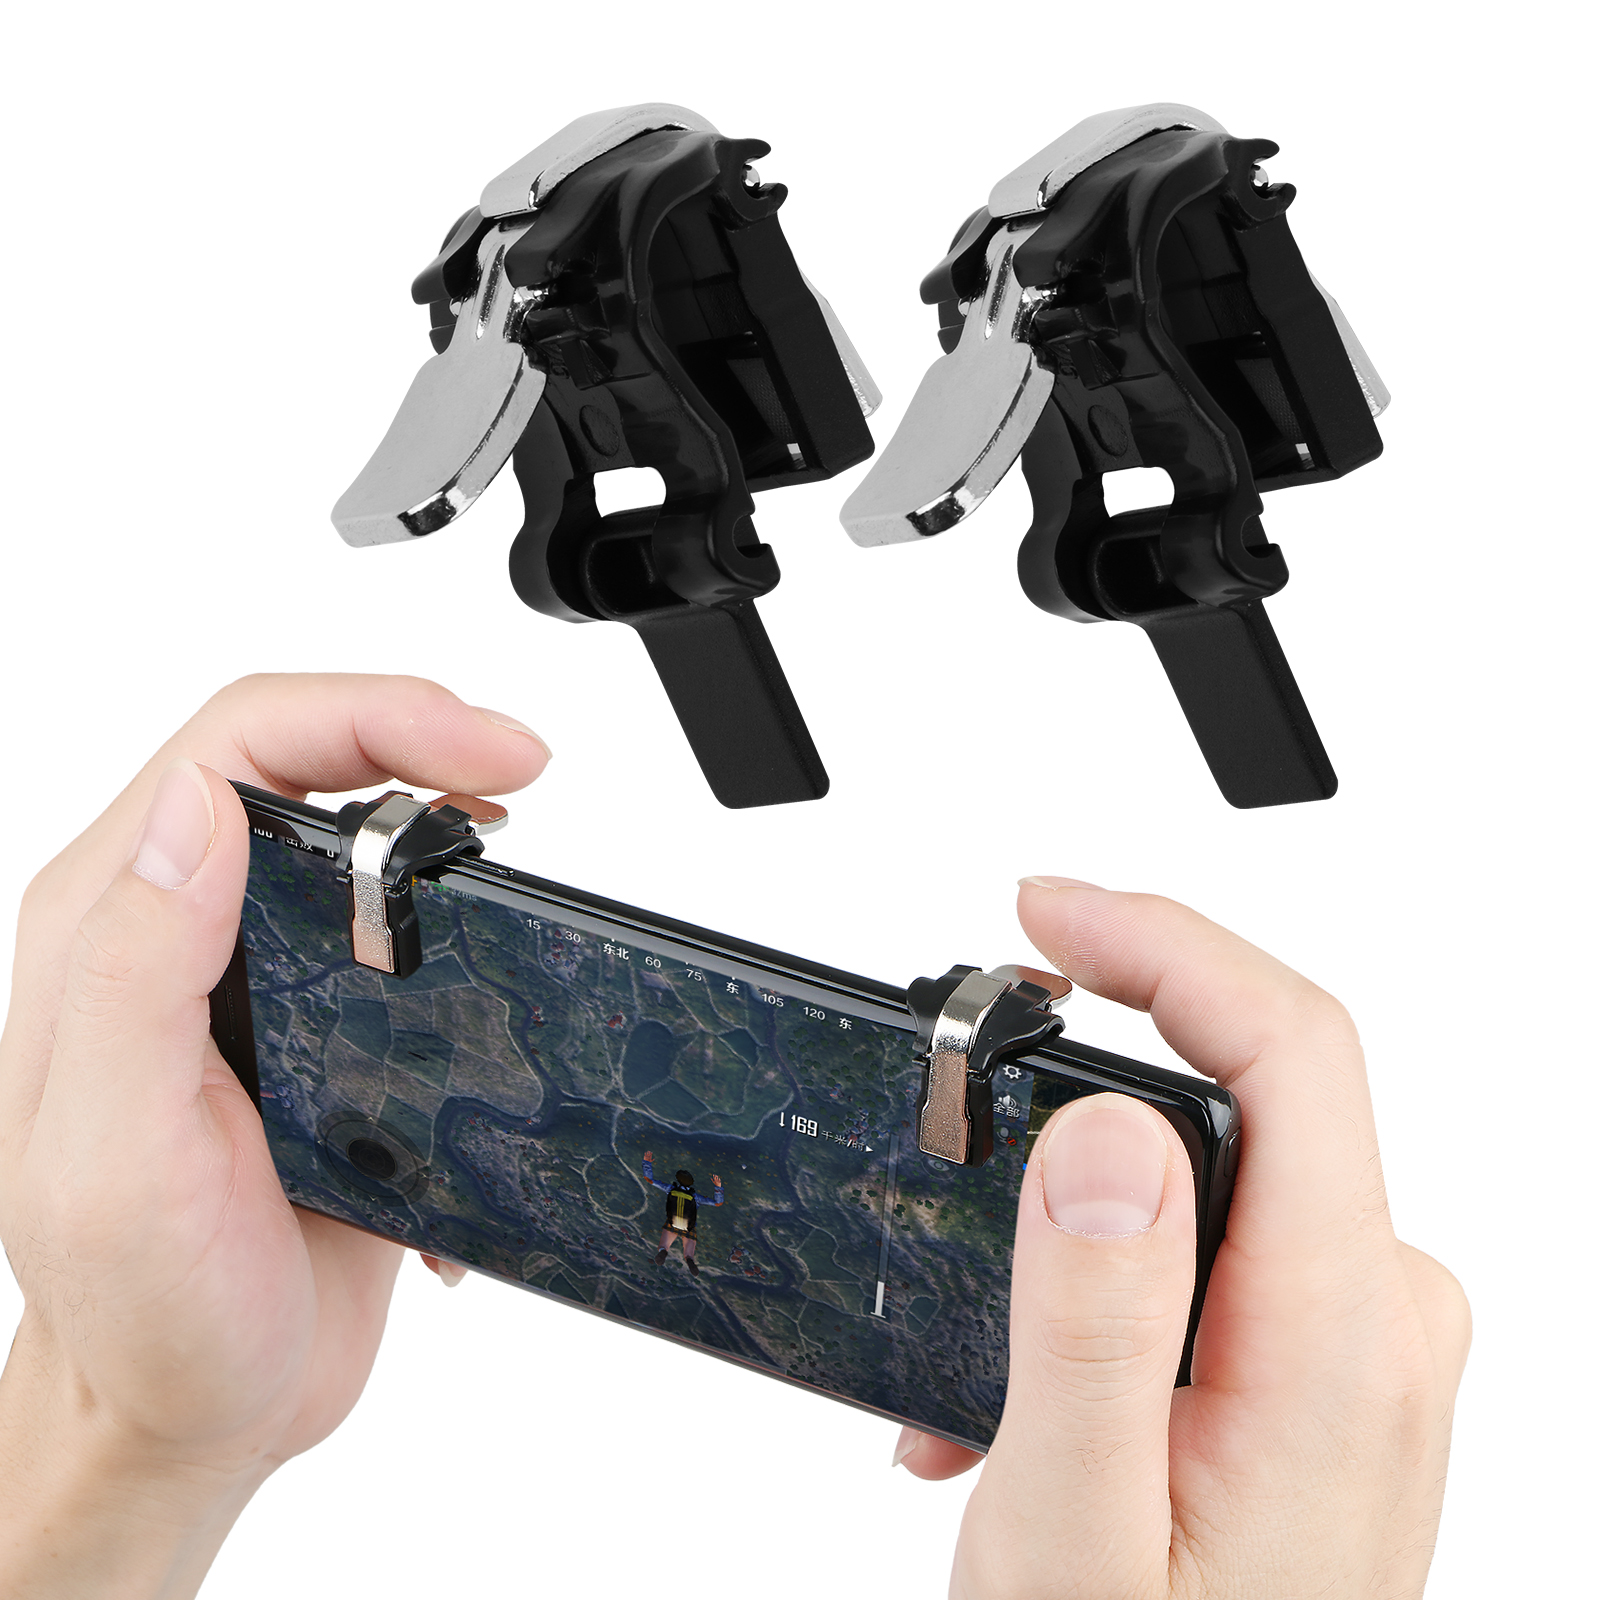 New-Gamepad-Trigger-Controller-Joystick-Shooter-For-PUBG-Android-Mobile-Legend